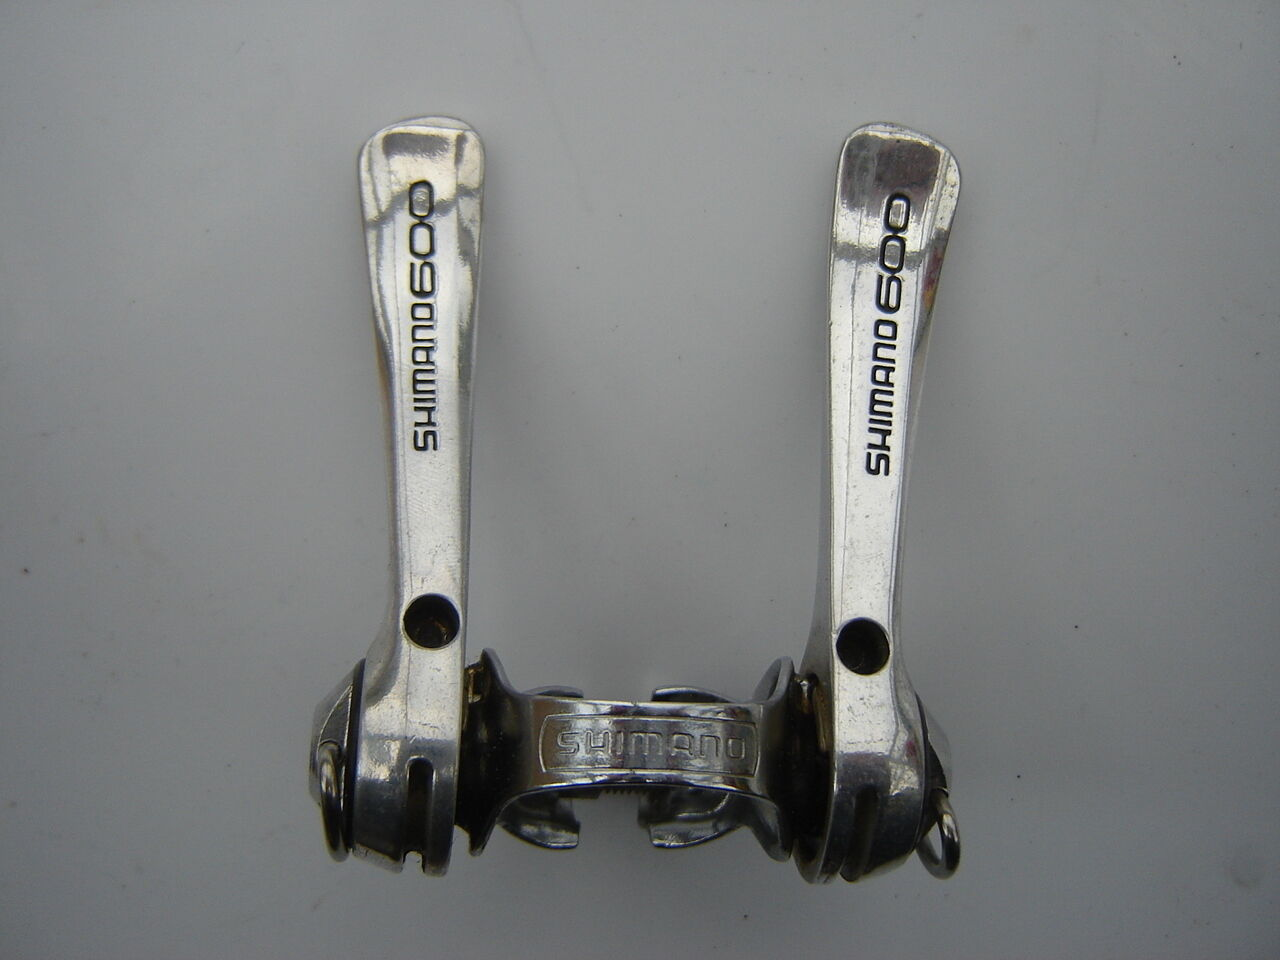 SHIMANO 600 EX SL6207  CLAMP ON SHIFTING LEVERS  NOS